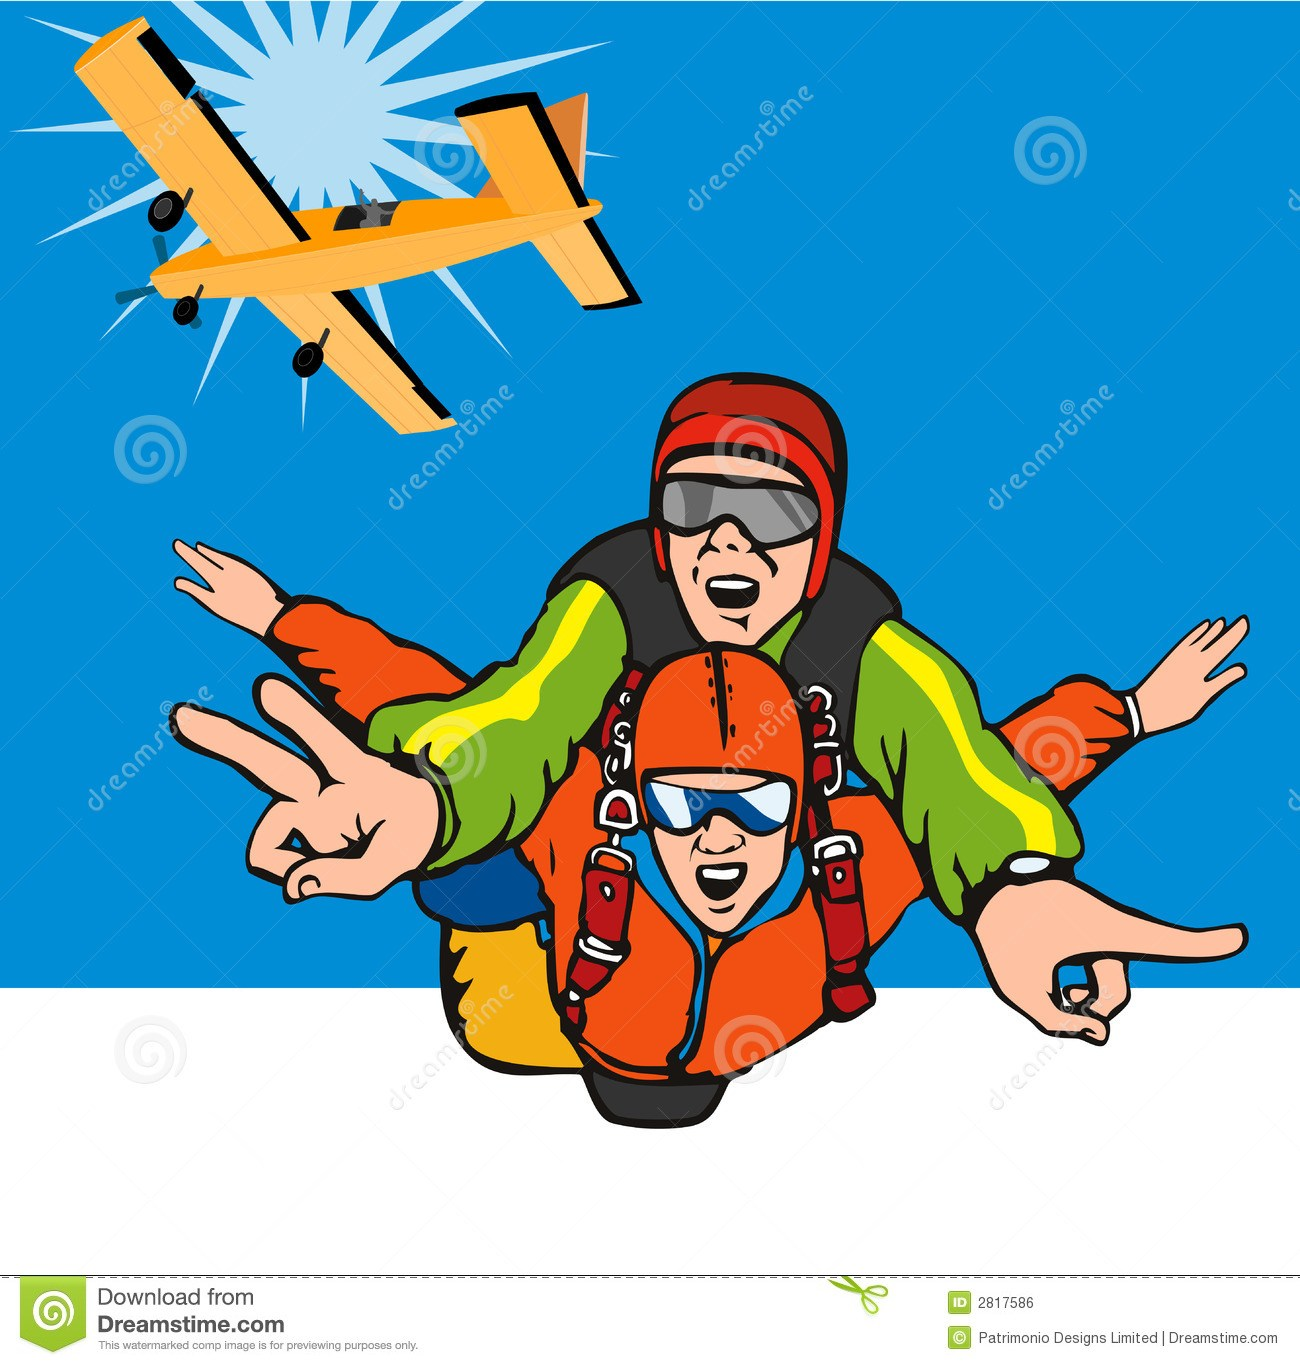 Free skydiving clipart 7 » Clipart Portal.